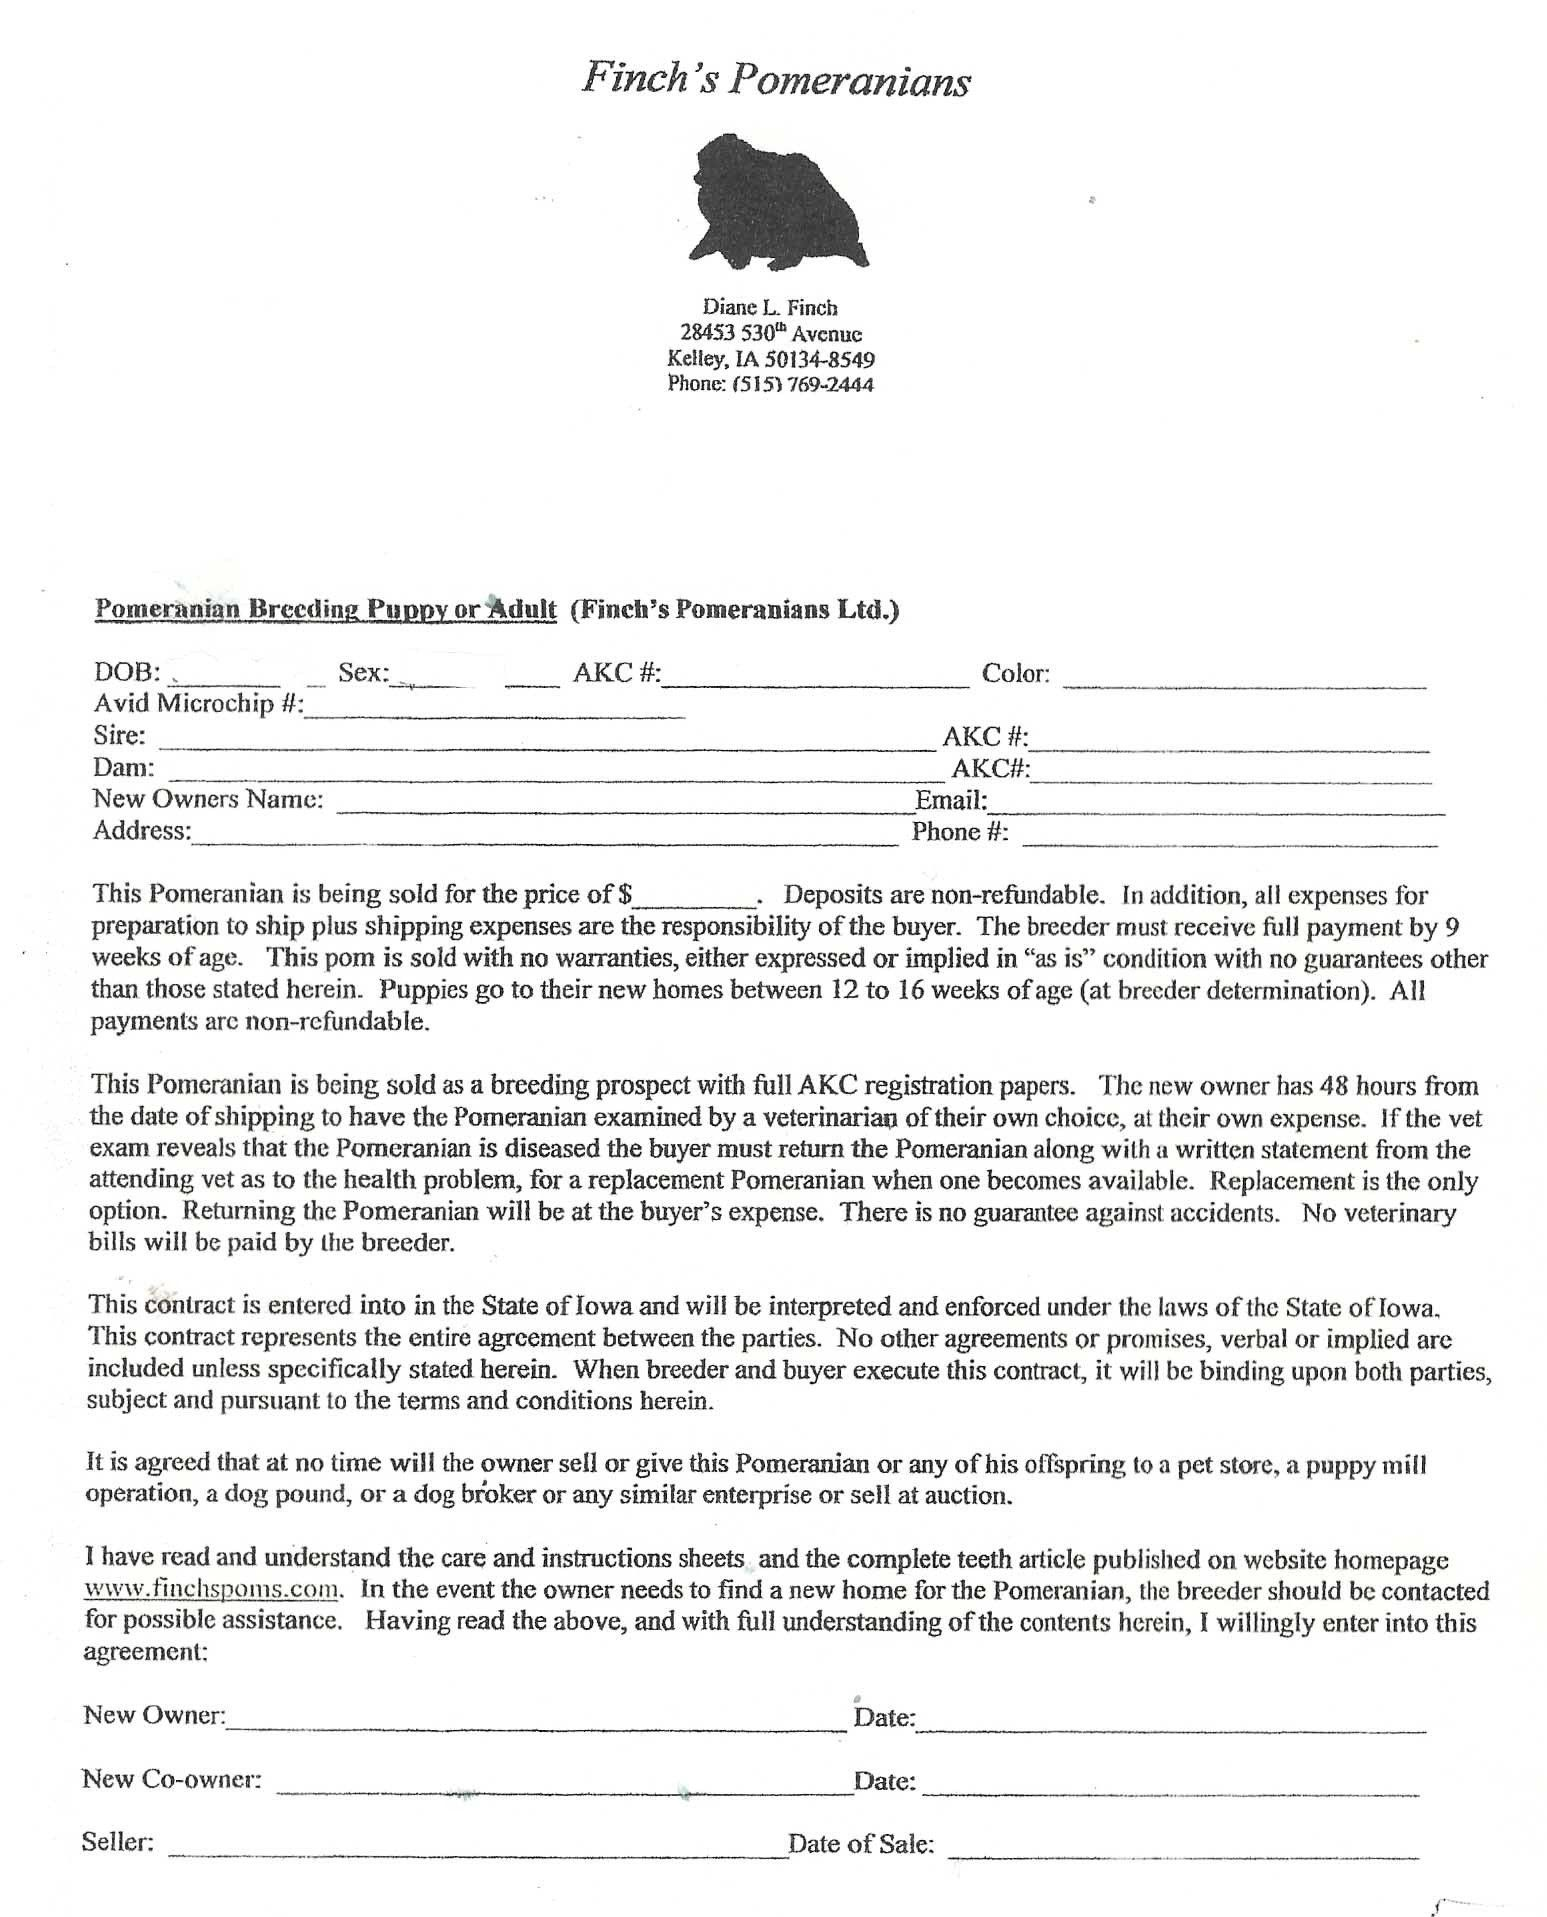 28 Dog Breeding Contract Template in 2020 (With images